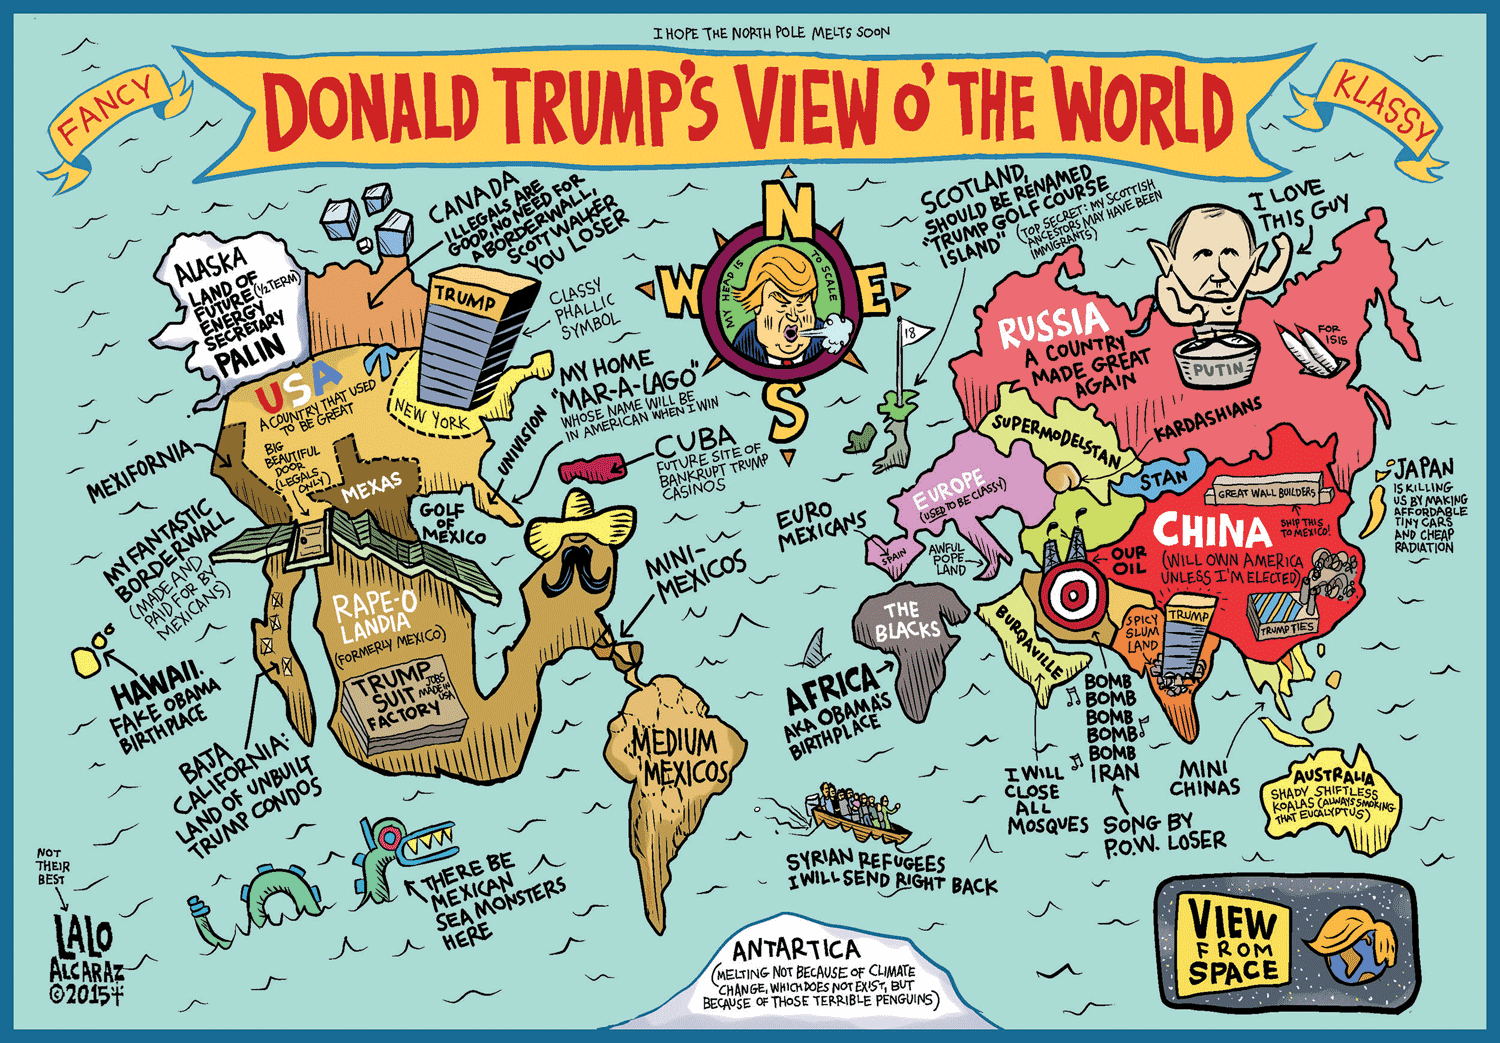 map of the world according to donald trump anirudh sethi report map of the world according to donald trump